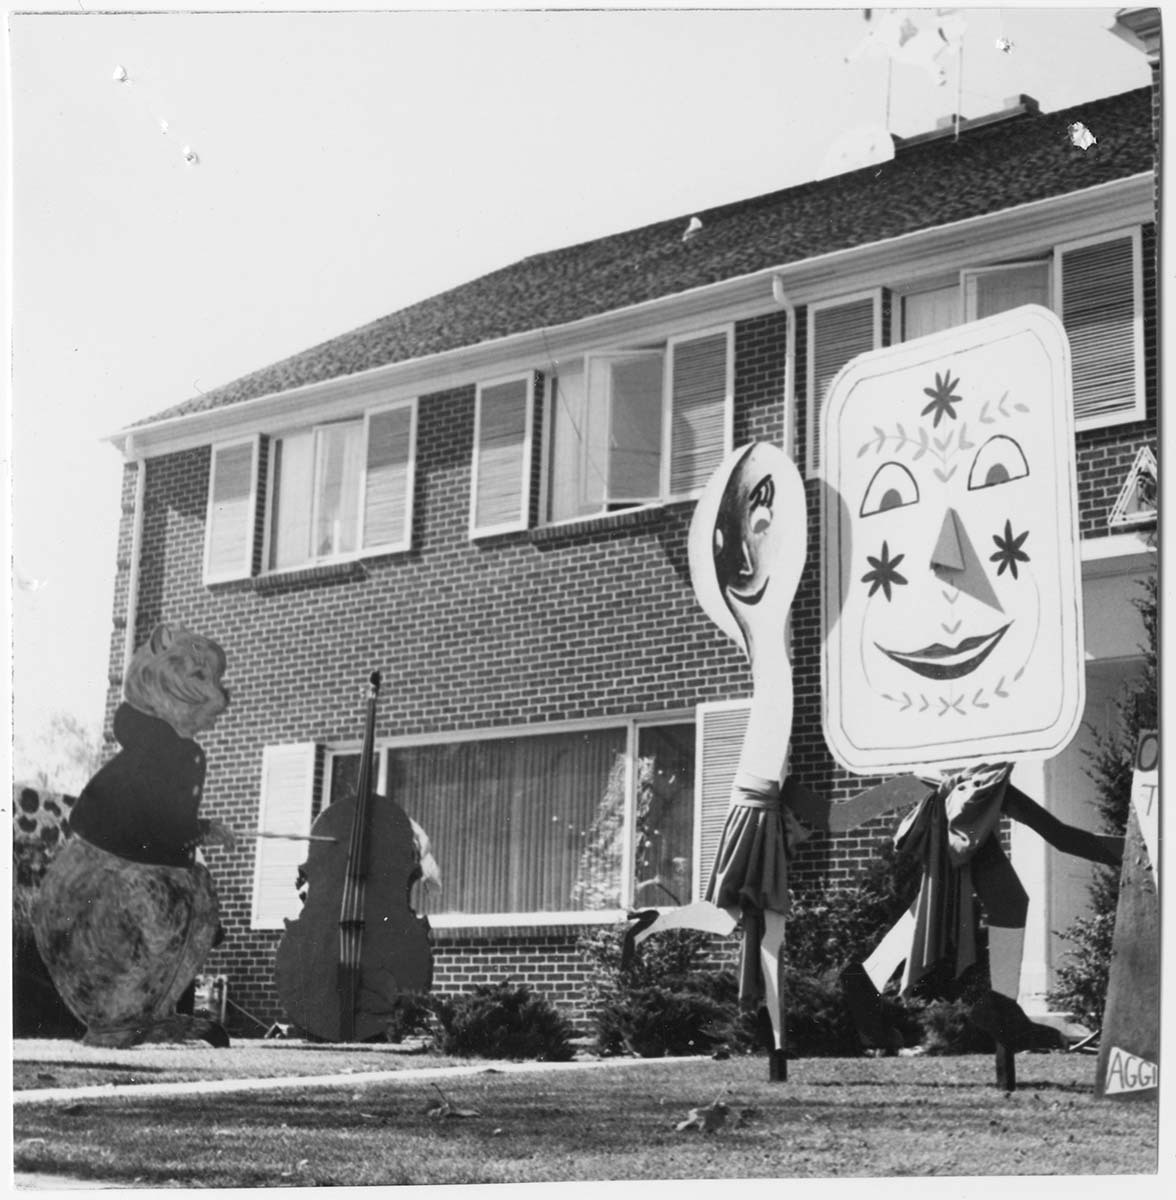 Fraternity house decorations: The Cow Jumped Over the Moon, 1958